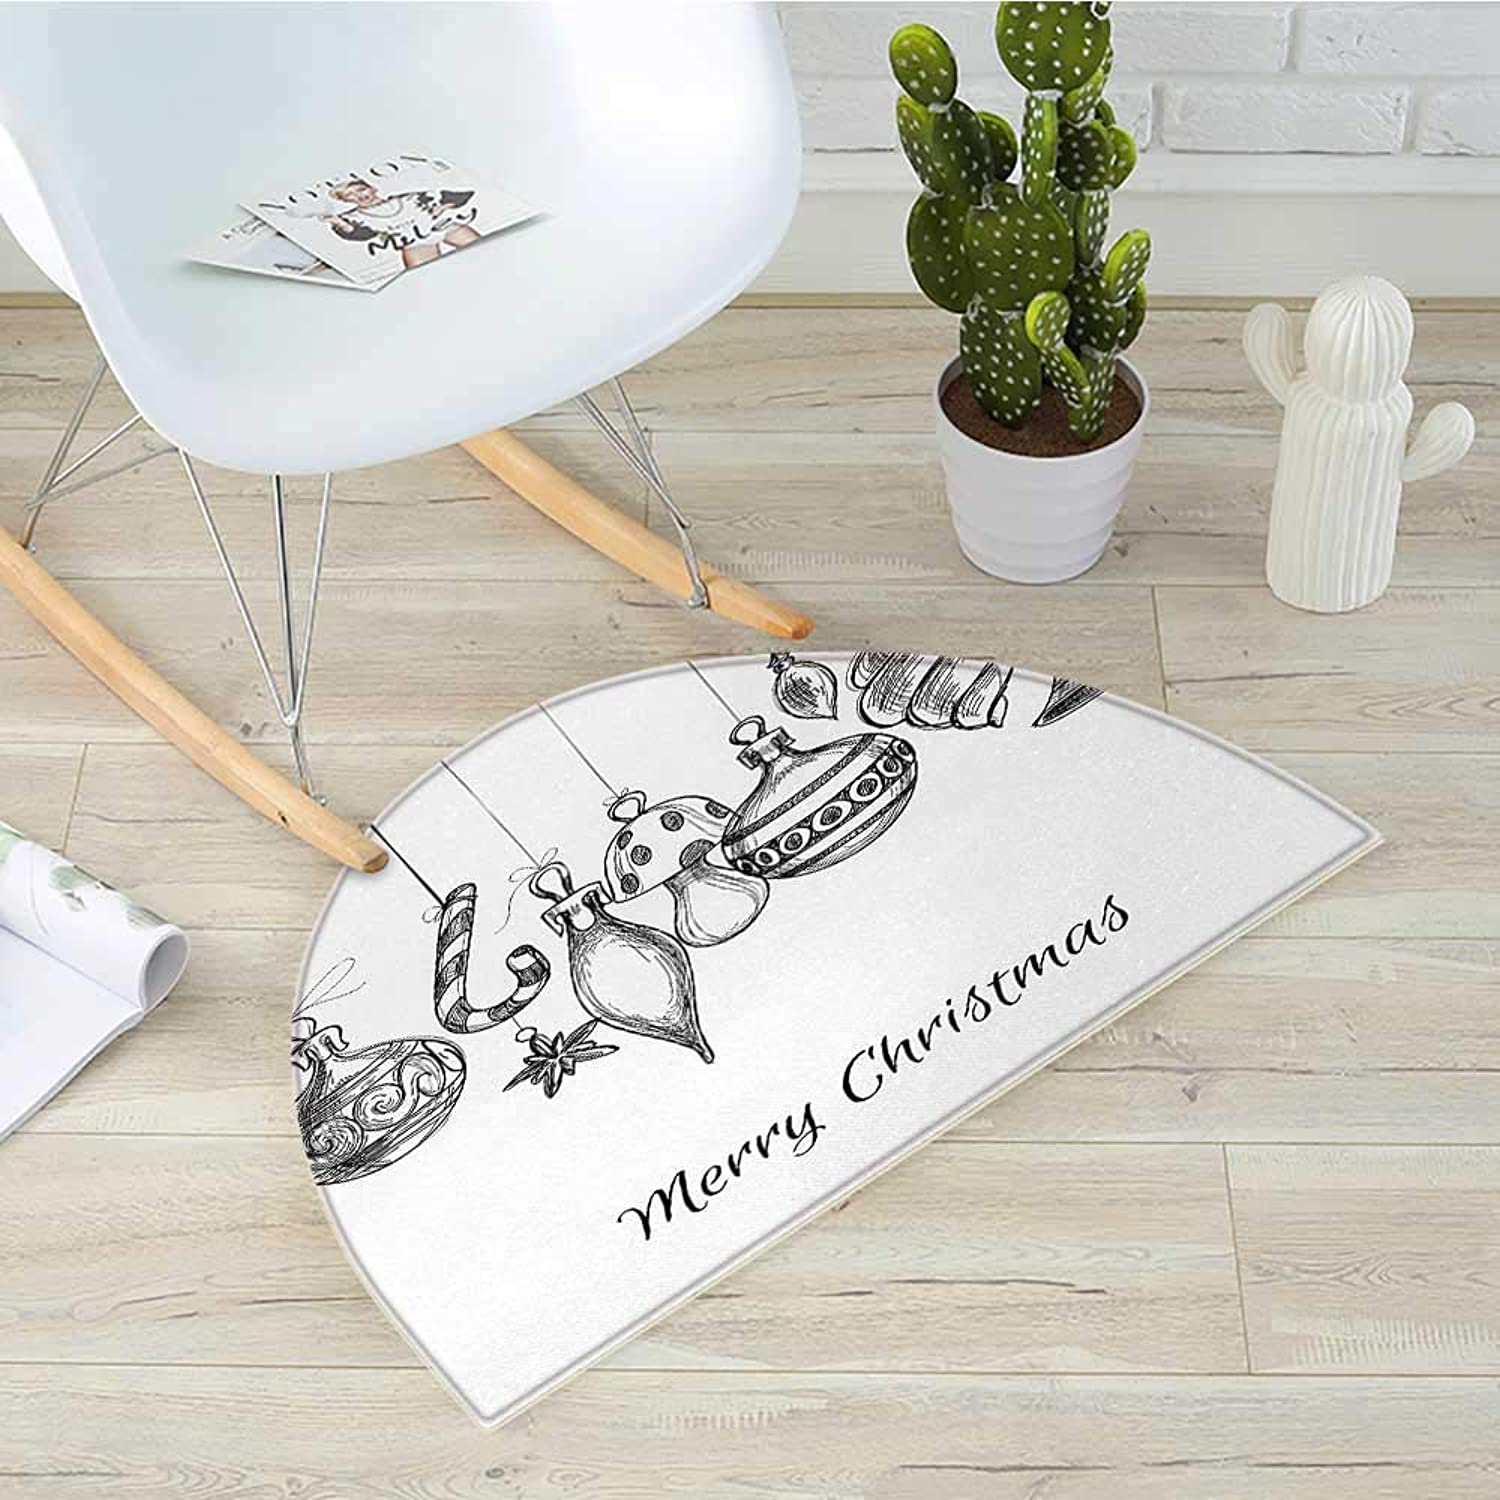 Christmas Semicircle Doormat Sketchy Hand Drawn Classical Ornaments Hanging from Strings Celebration Text Halfmoon doormats H 39.3  xD 59  Black White